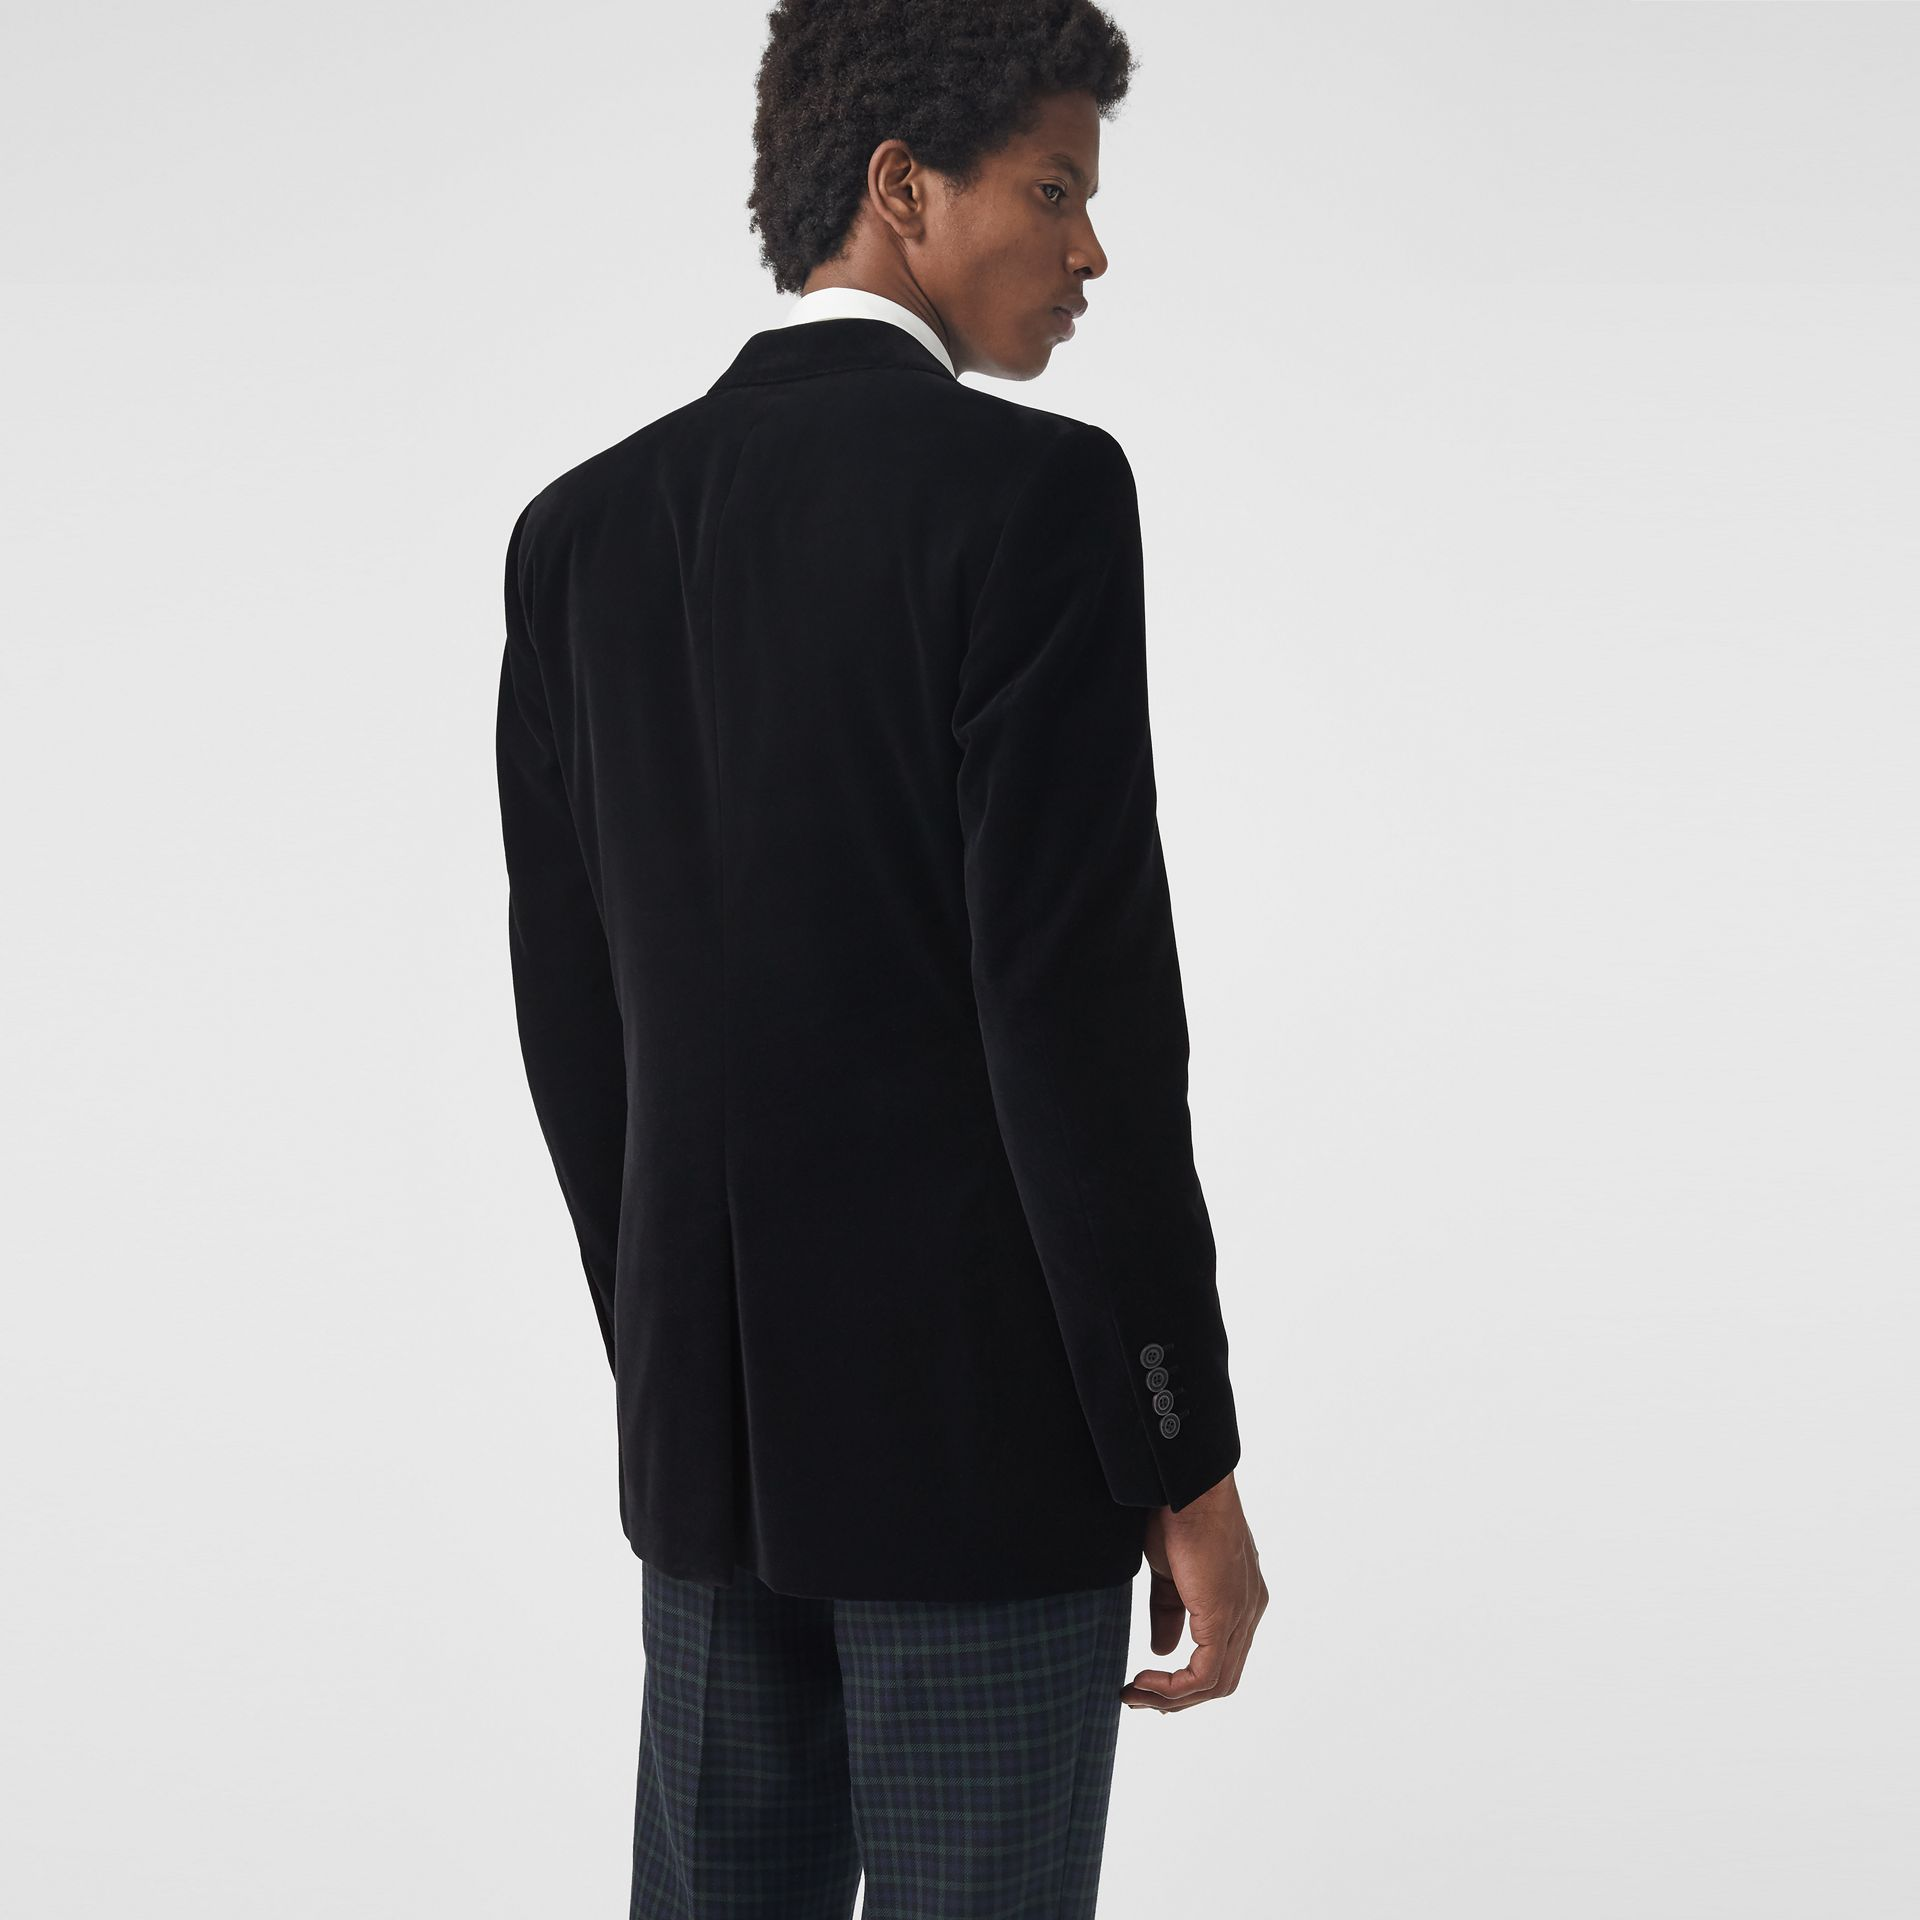 Classic Fit Velvet Tailored Jacket in Black - Men | Burberry United Kingdom - gallery image 2